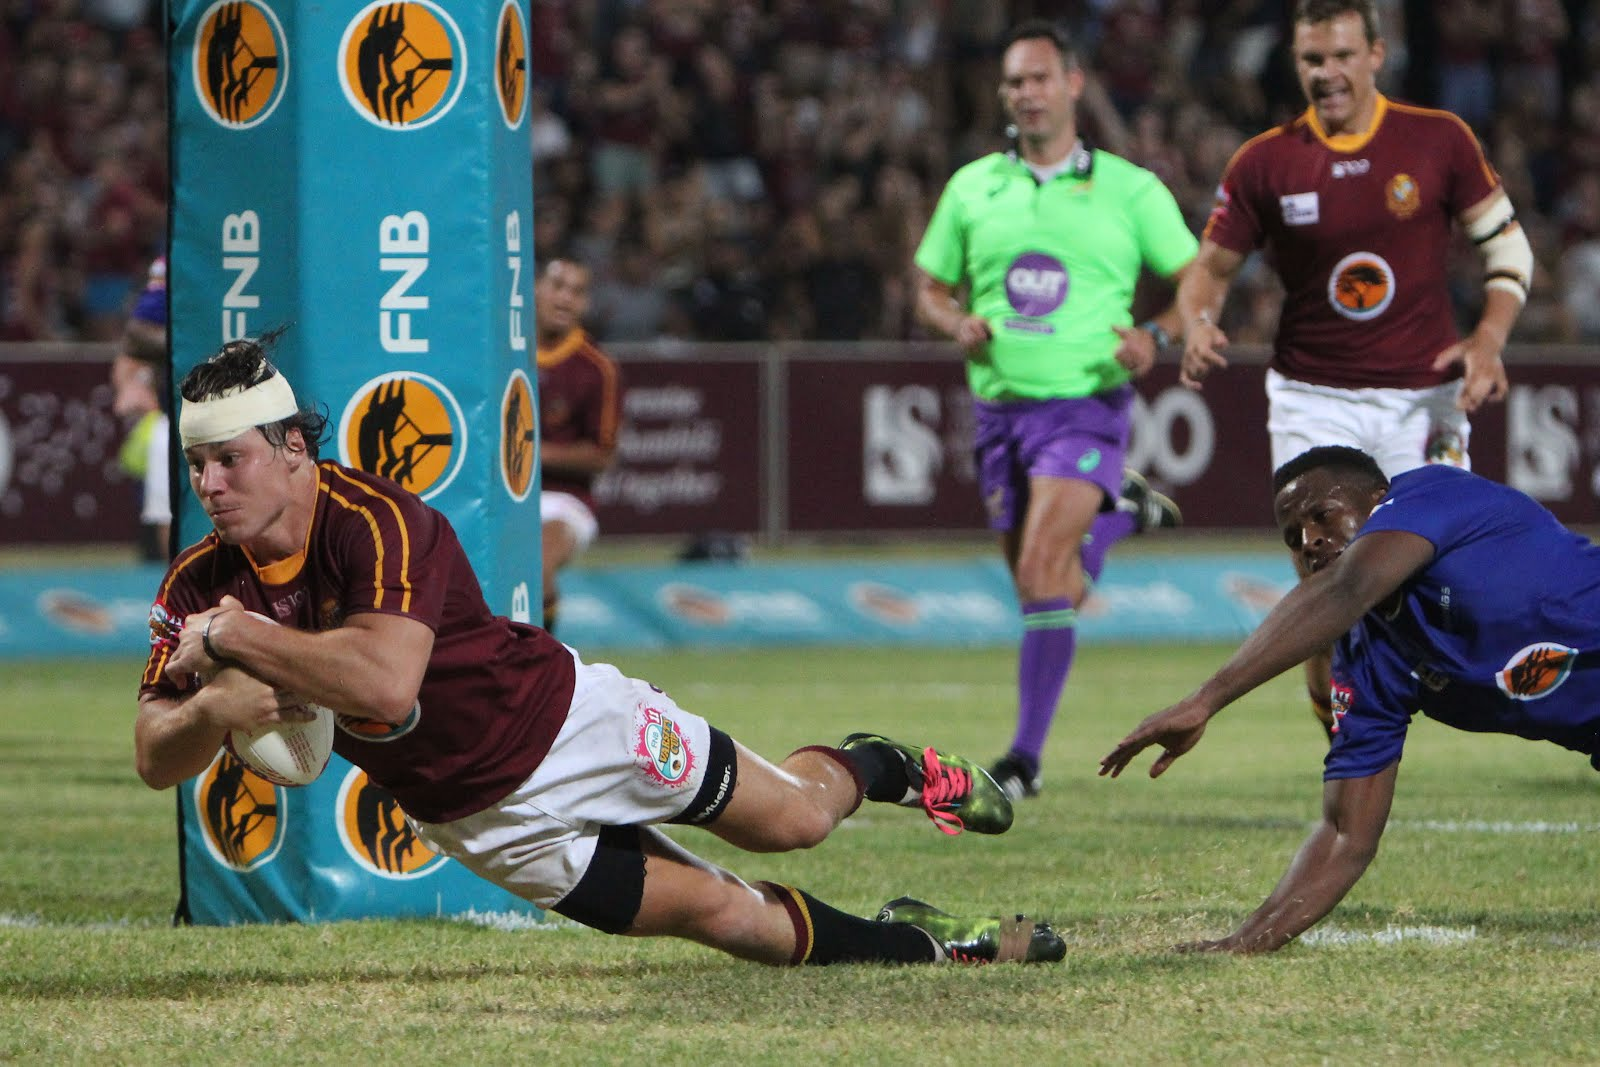 Maties rugby player scoring a try in Varisty Cup